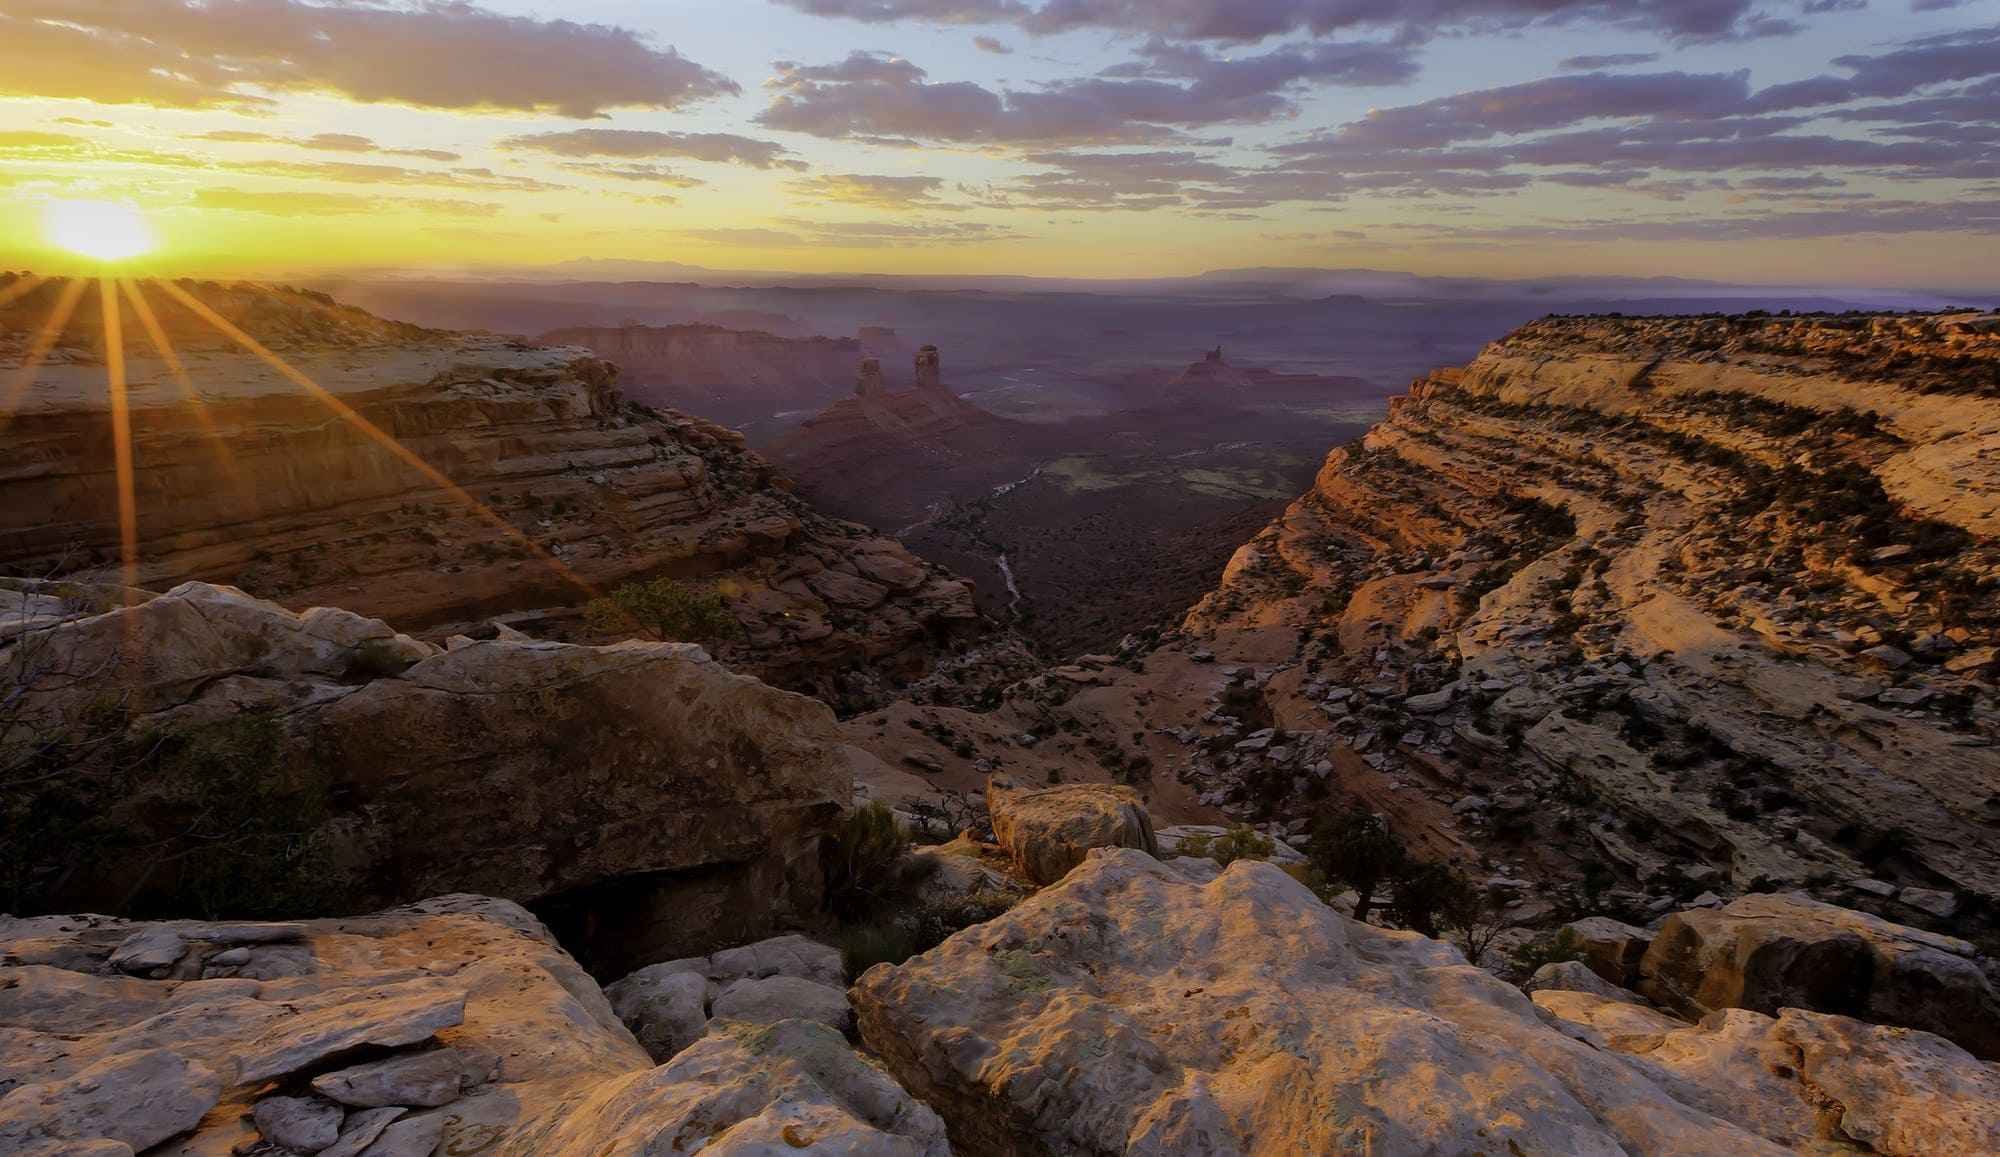 Bears Ears National Monument is under threat. Learn how to Vote the Oudoors at the upcoming election with our guide to being an engaged outdoor enthusiast